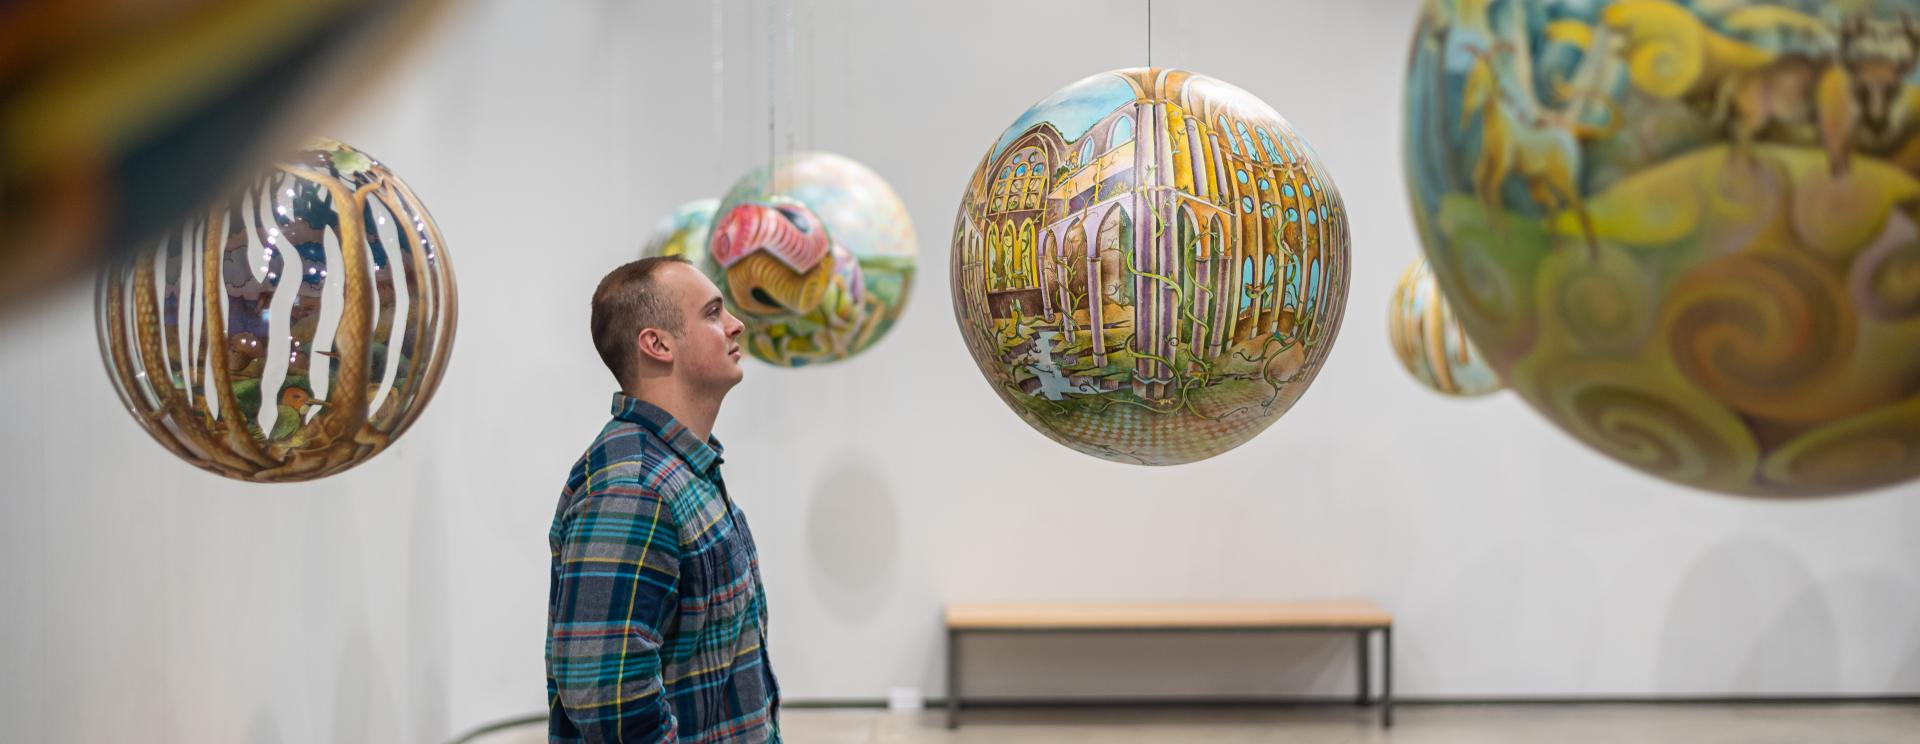 Top Spots to Find Local Black Hills Art in Downtown Rapid City